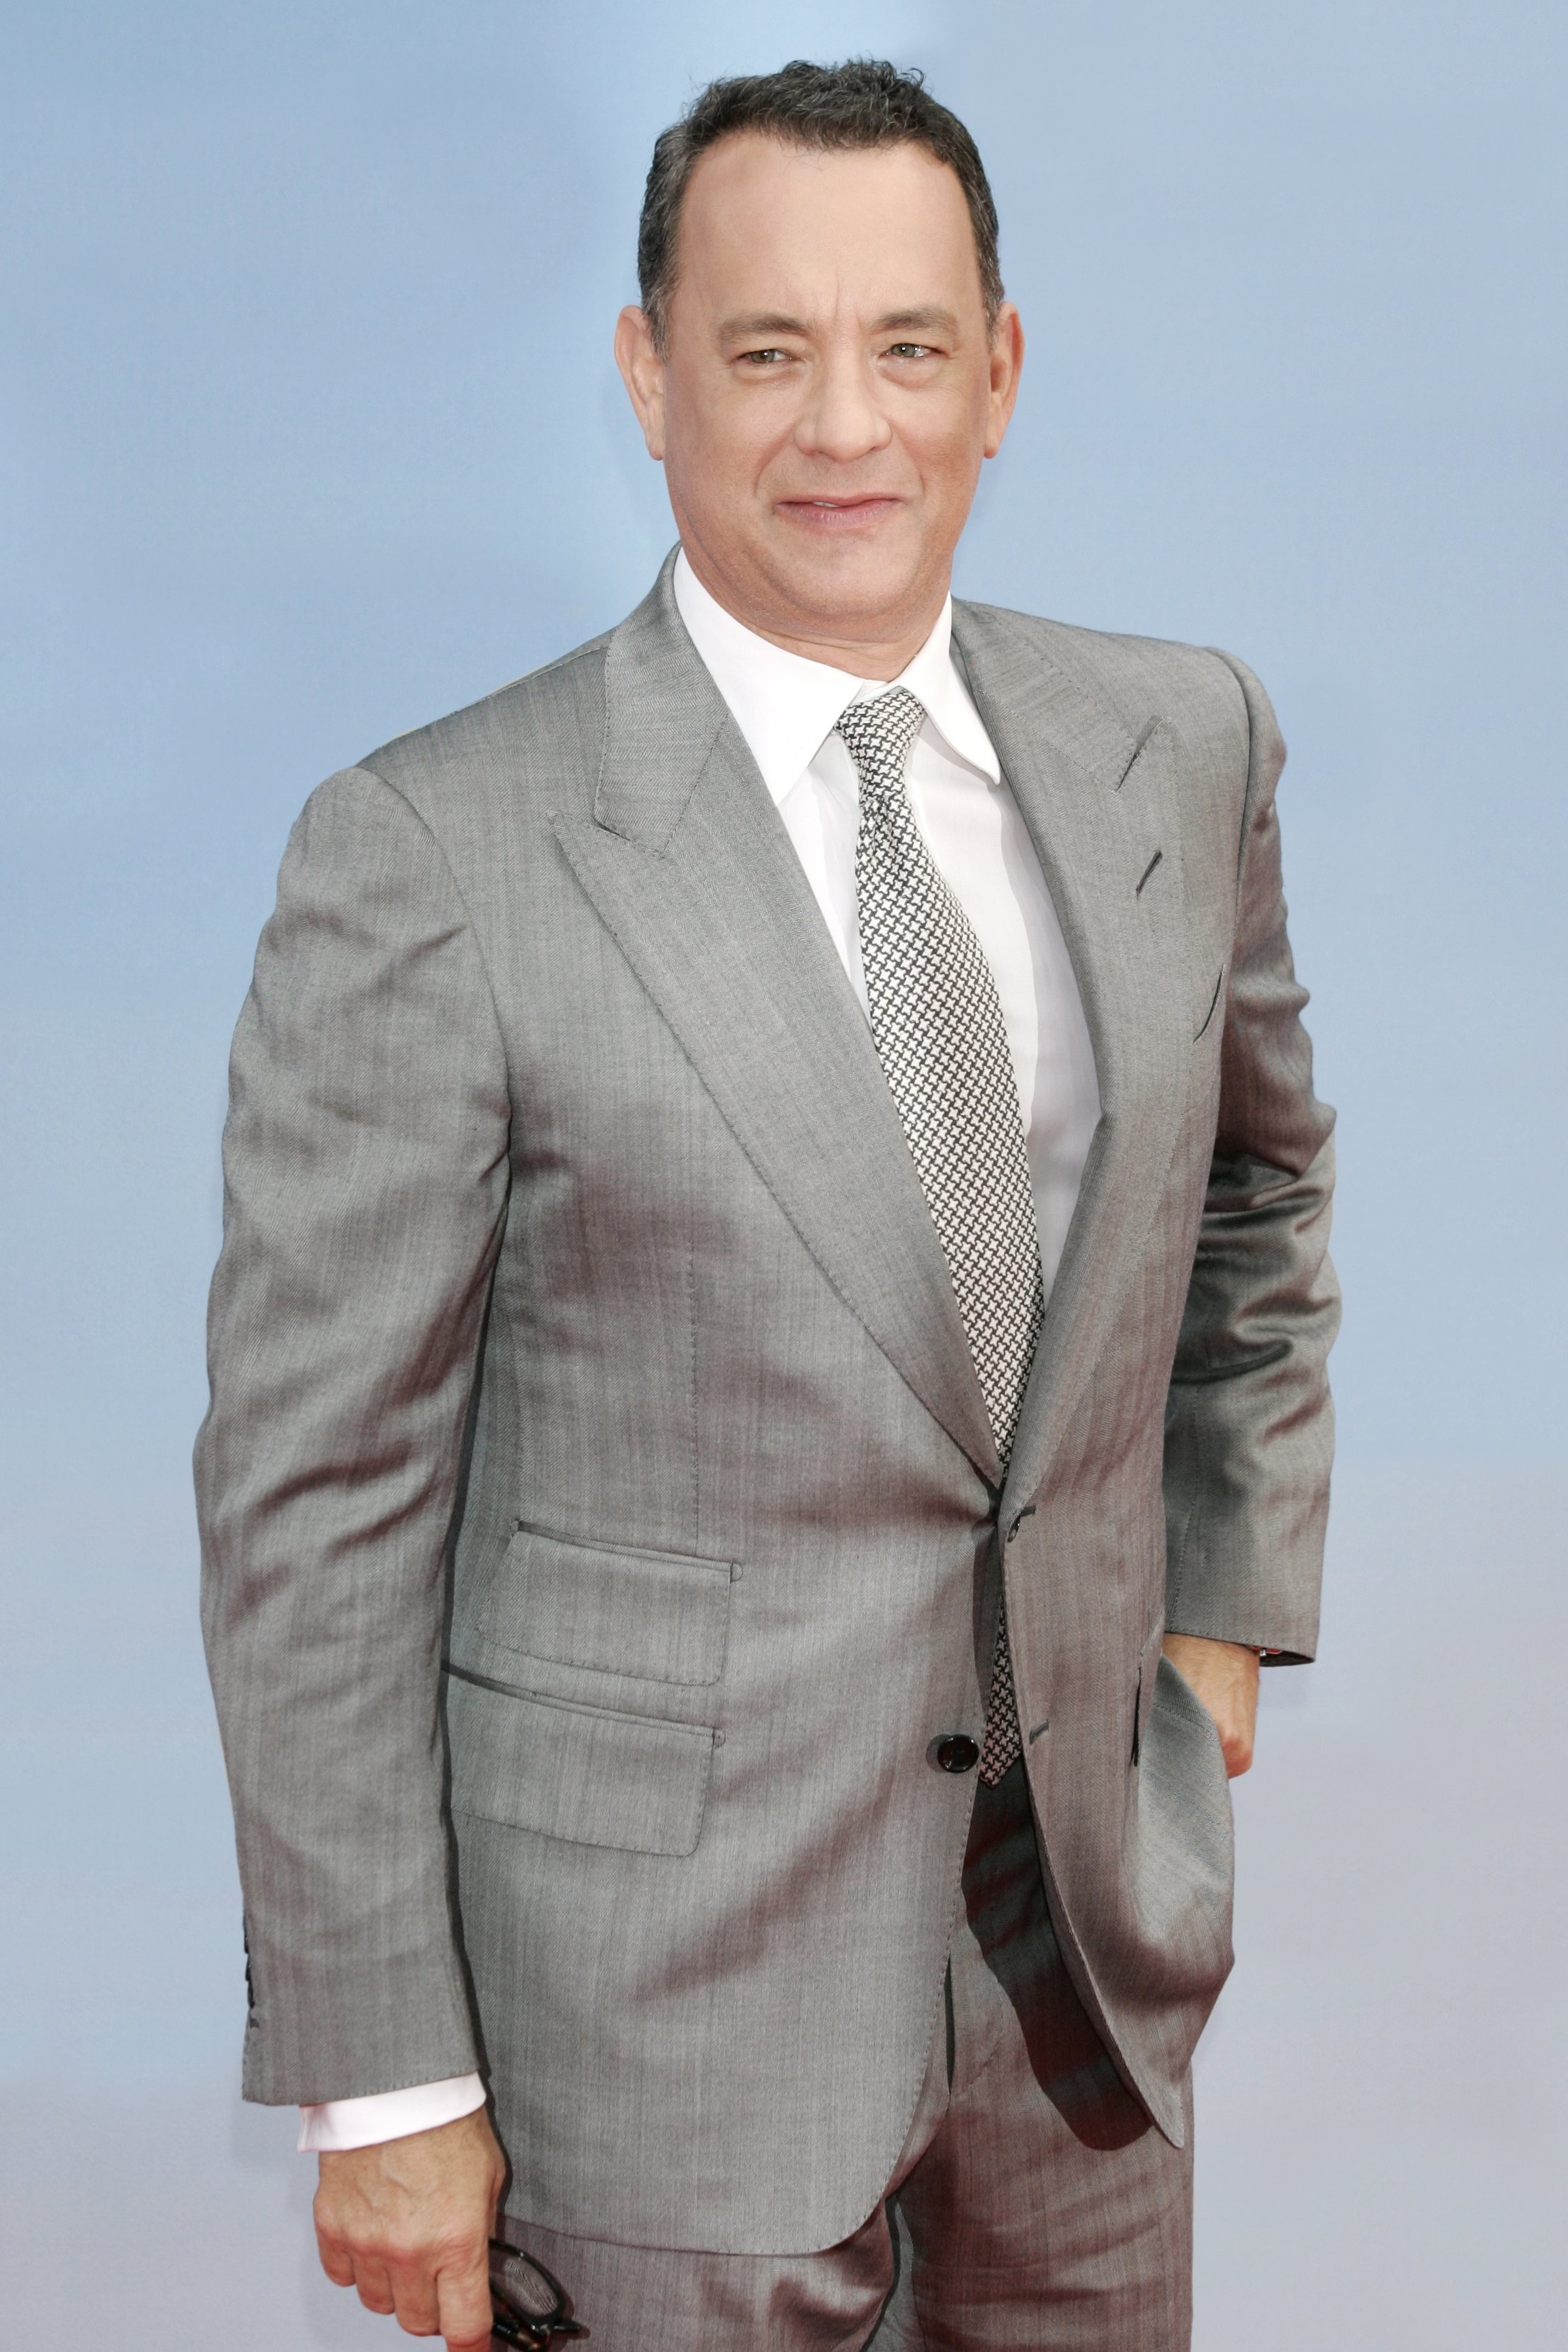 Tom Hanks at the Larry Crowne premiere Berlin, Germany June 09,2011. | Source: Getty Images